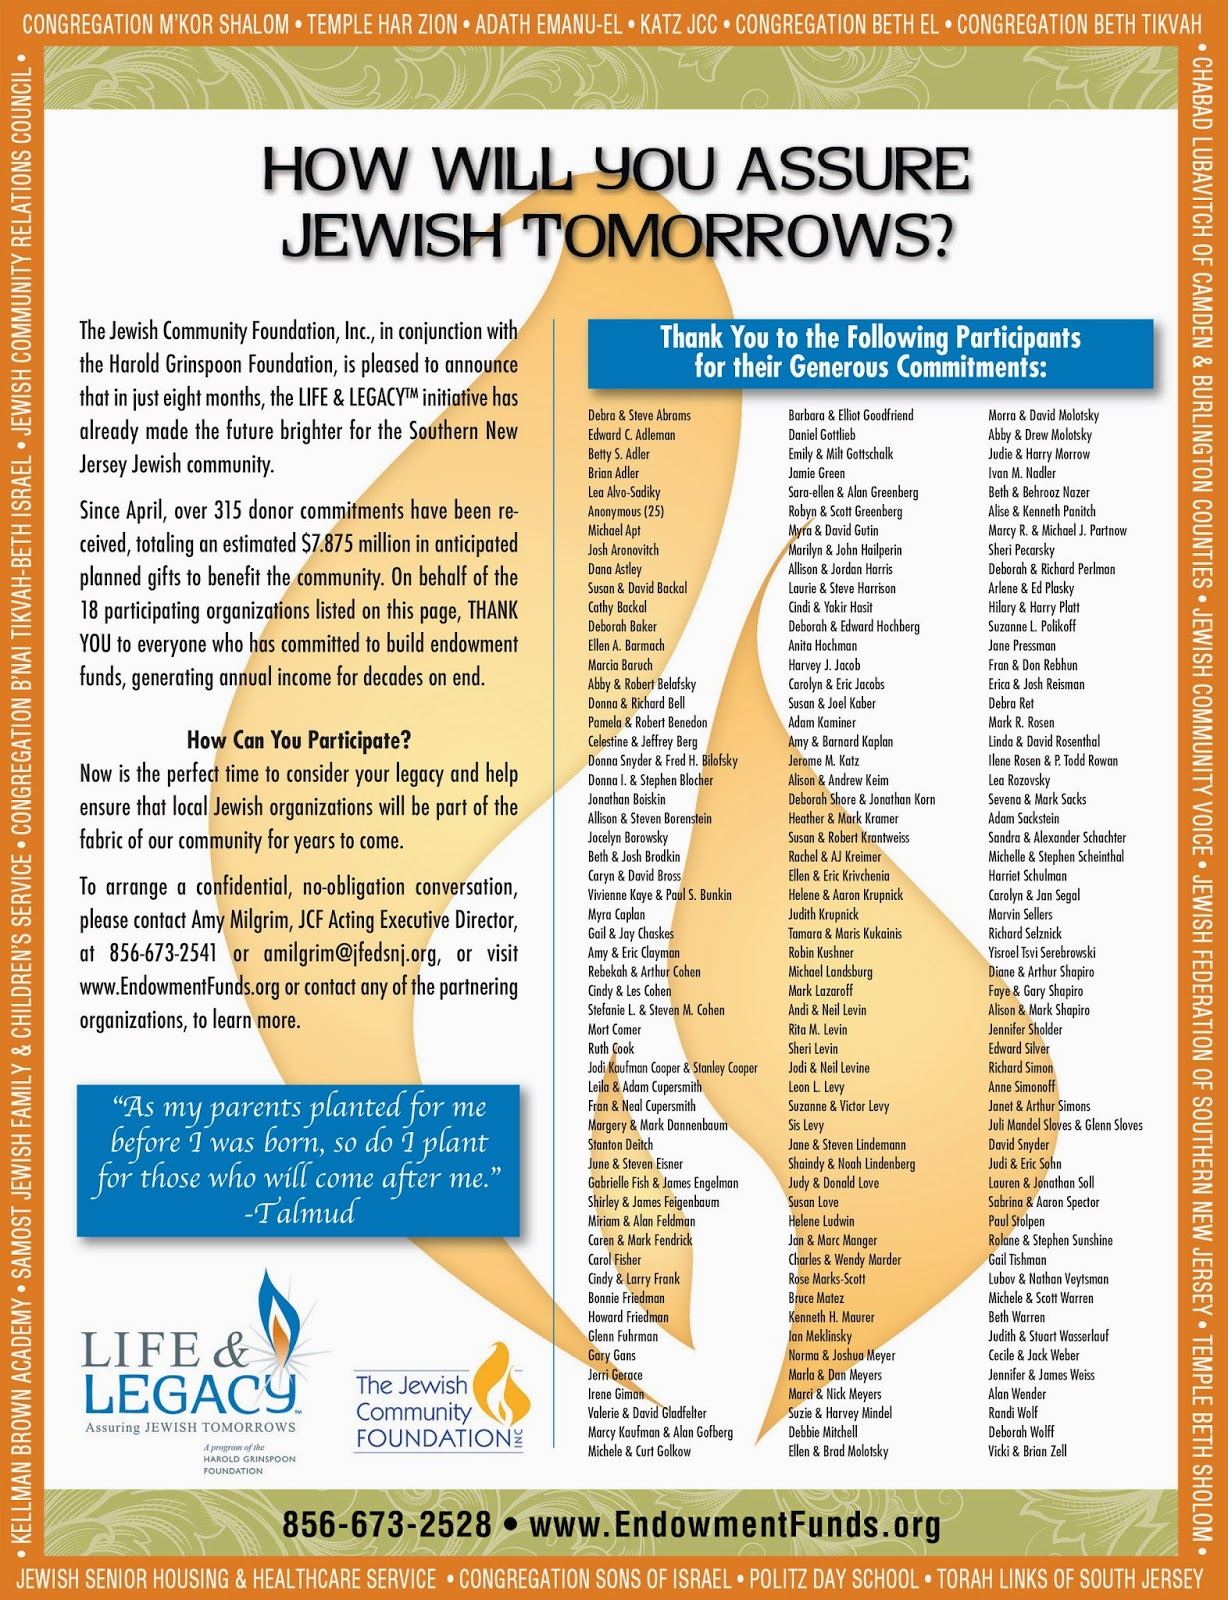 Reaching the Four Hundred Mark | Jewish Community Foundation, Inc  Blog